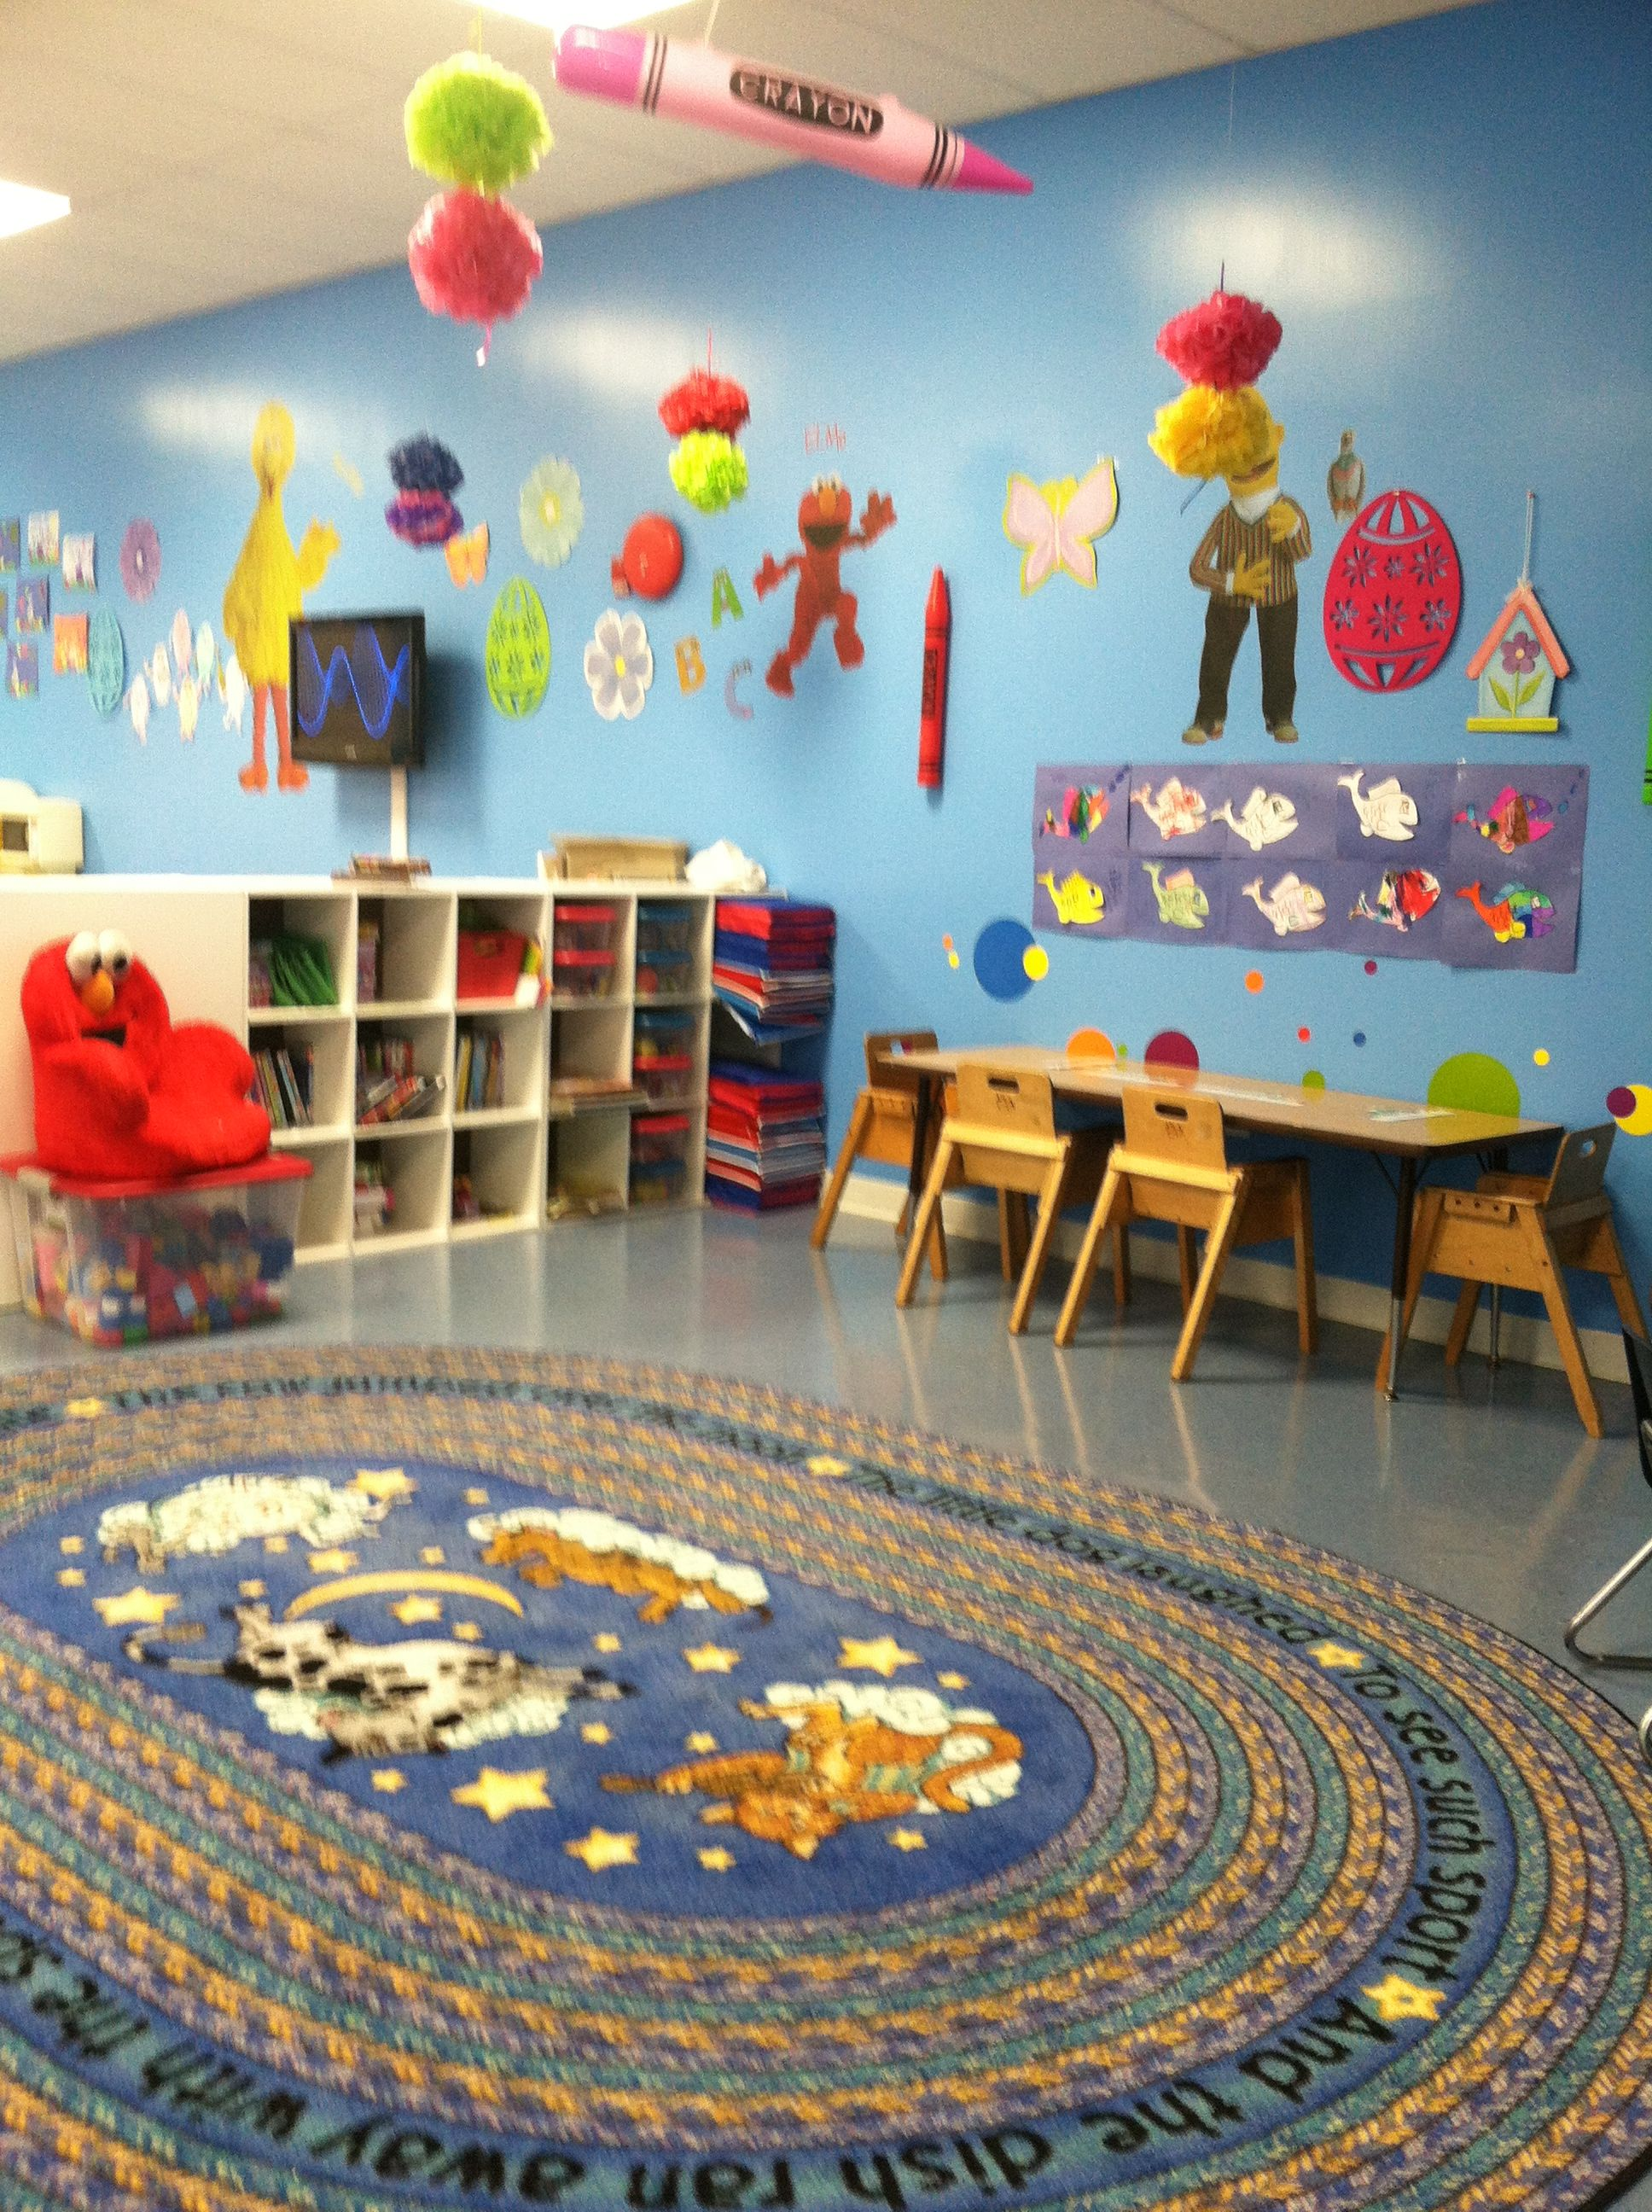 Daycare Clroom Decorations